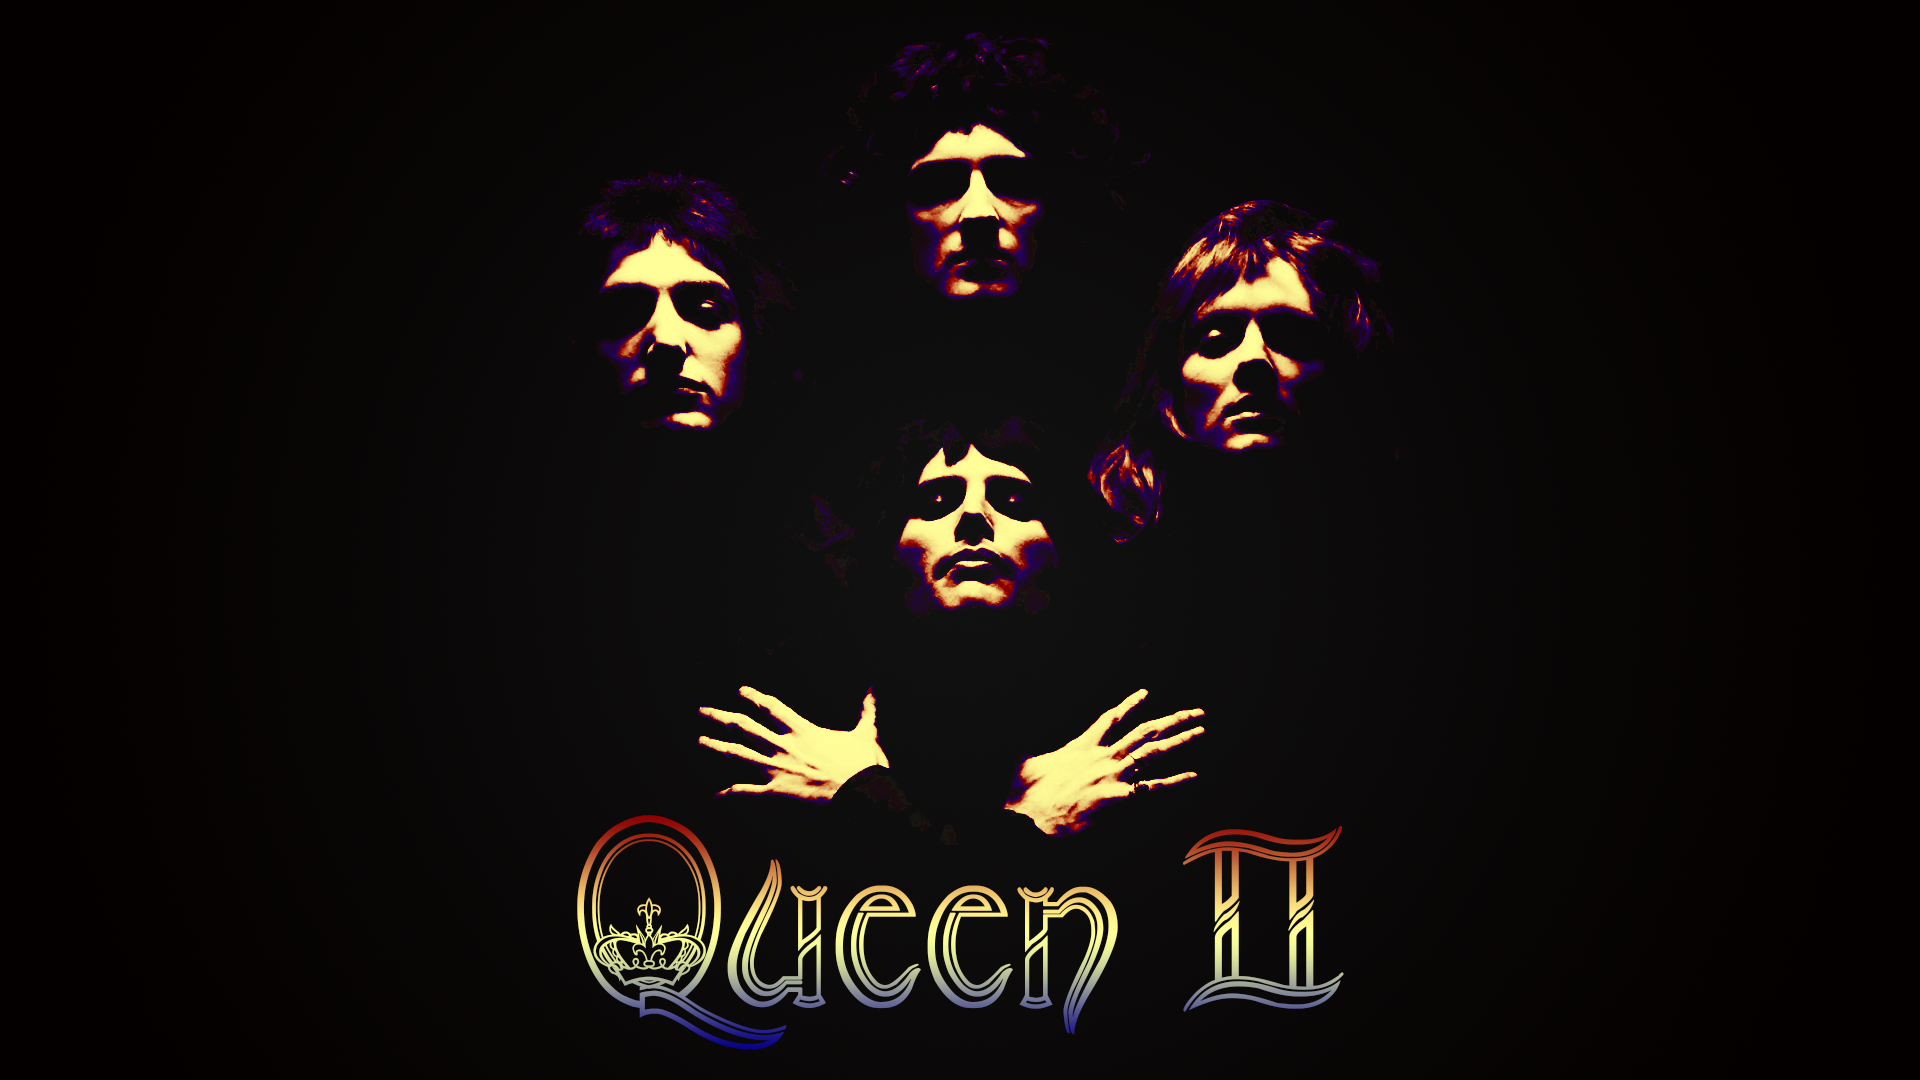 Hd Music Wallpapers For Android Group 62: Queen Computer Wallpapers, Desktop Backgrounds